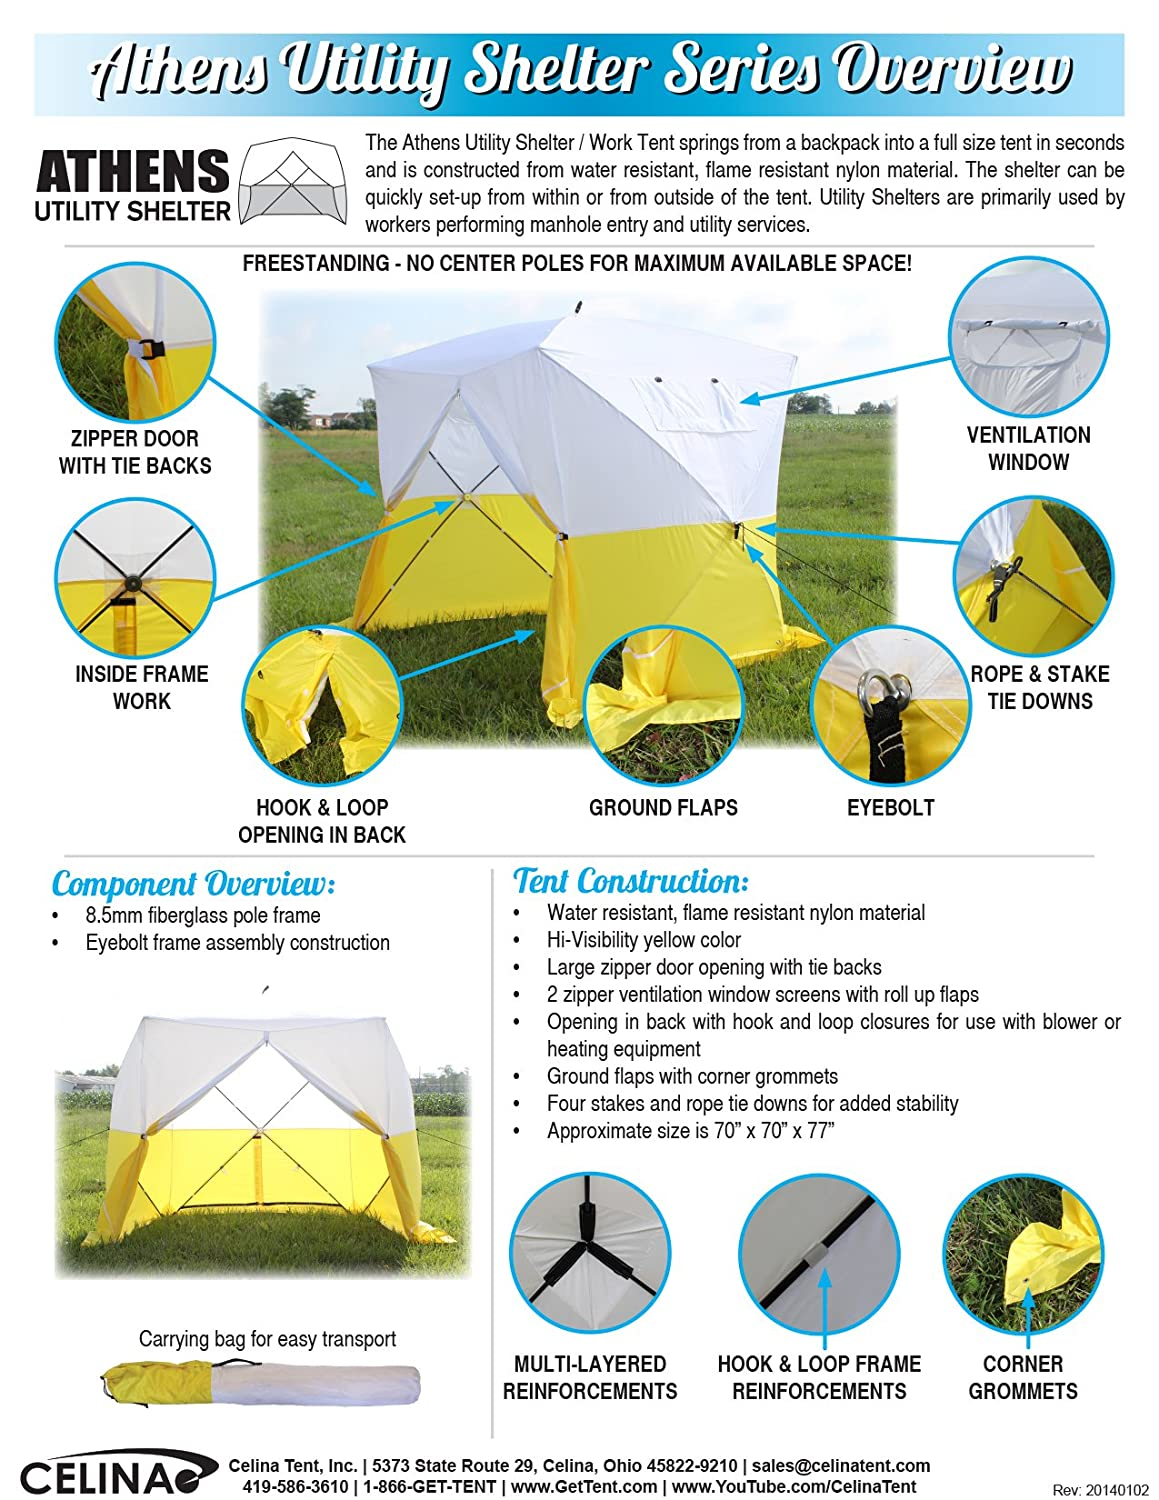 Amazon.com  Celina Tent Athens Utility Manhole Shelter  Sports u0026 Outdoors  sc 1 st  Amazon.com : manhole tents - memphite.com